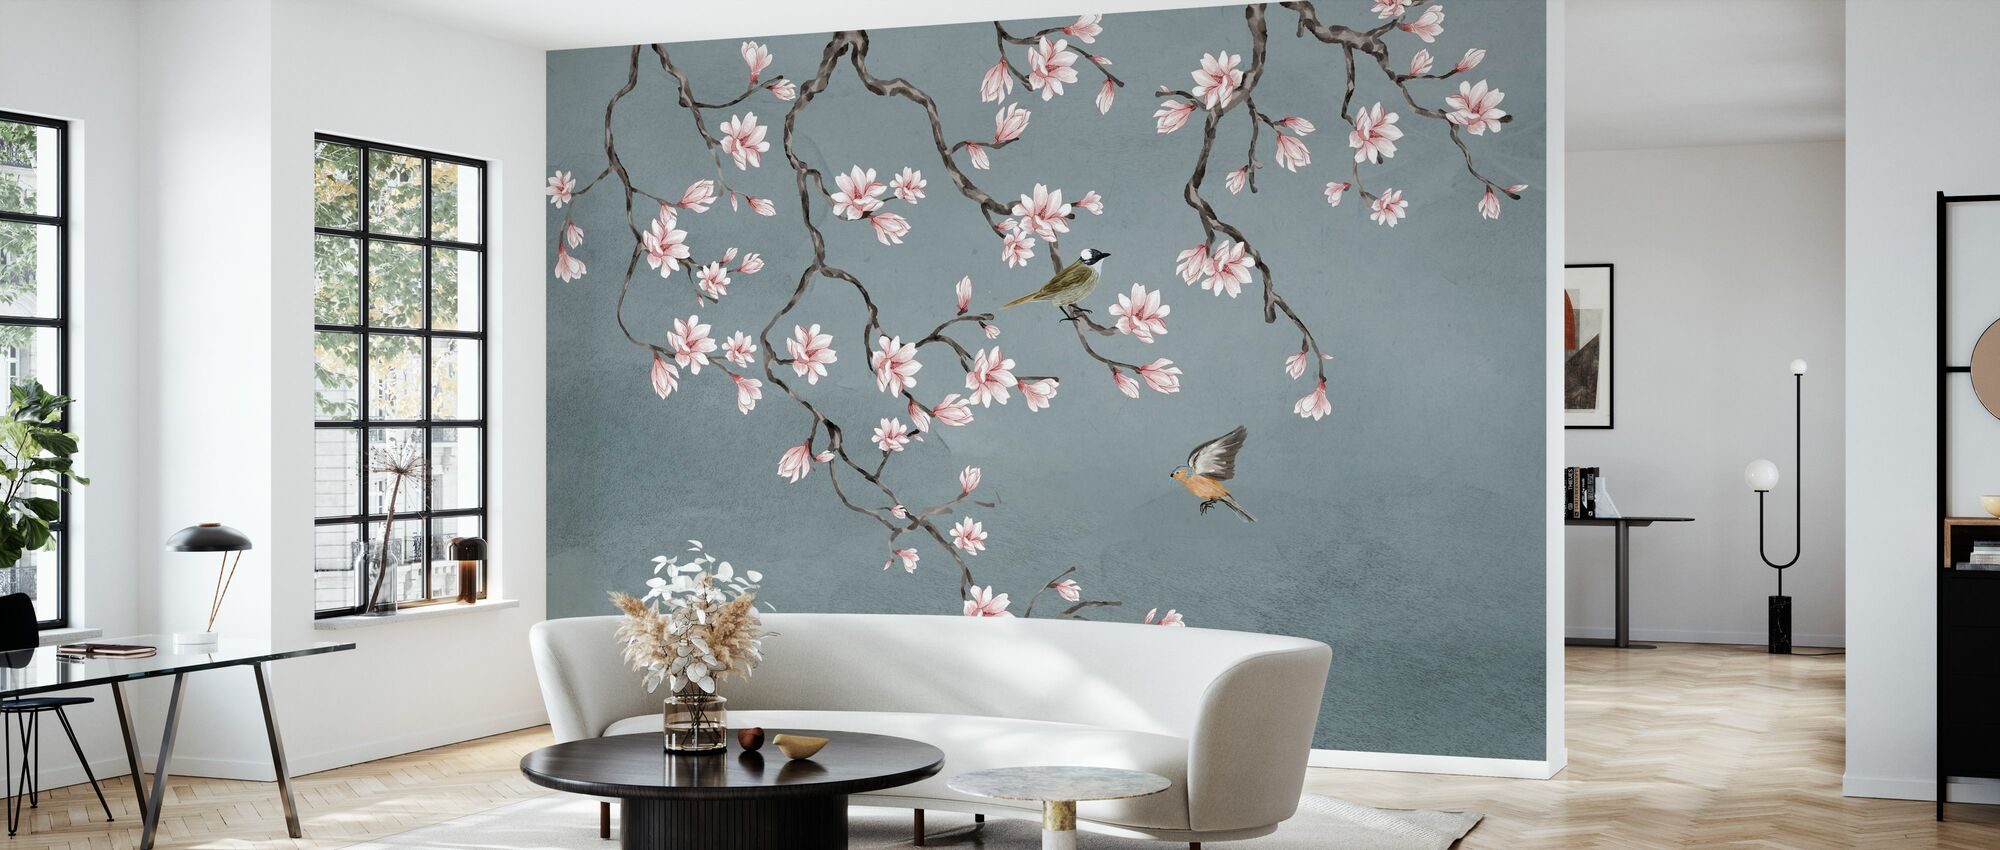 Birds Meeting Place - Wallpaper - Living Room